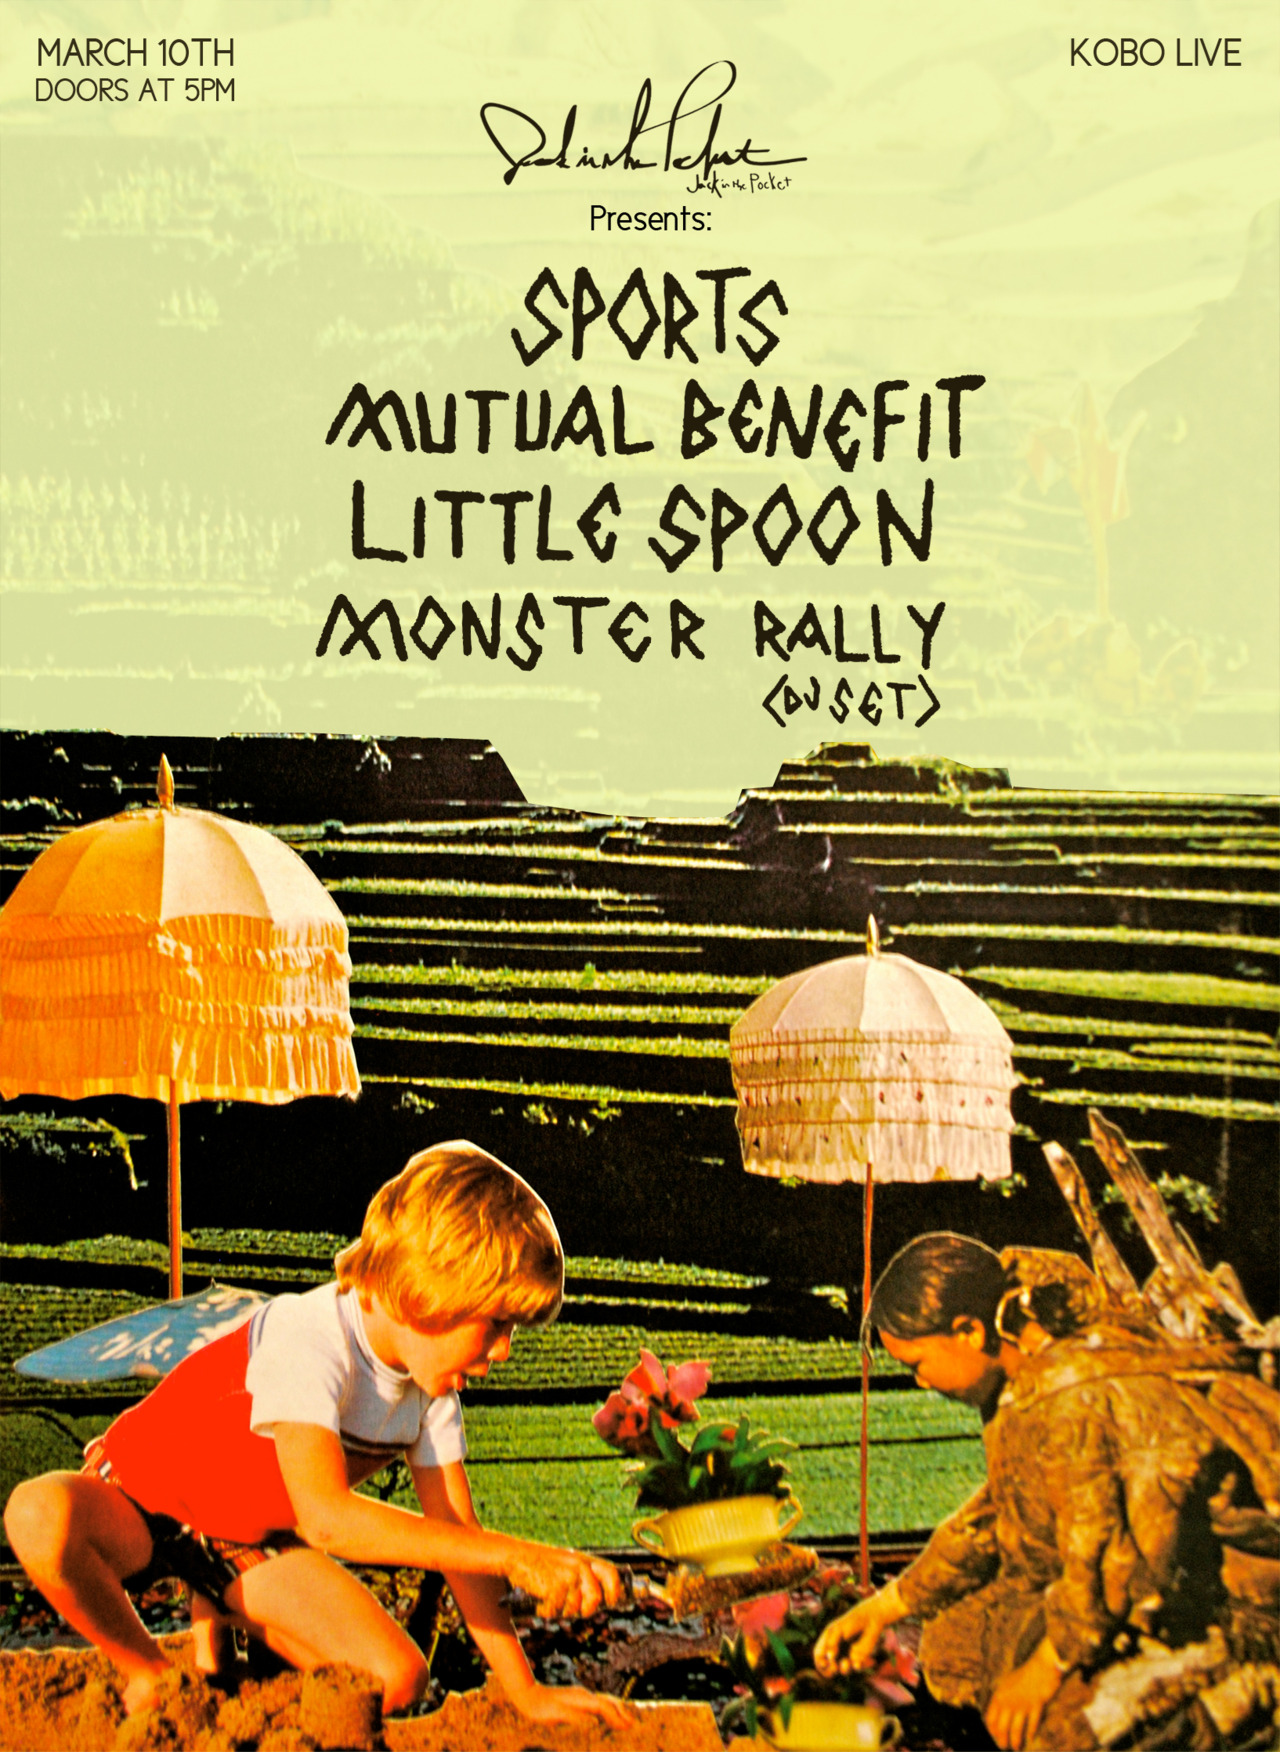 JackinthePocket.com Presents     Sports  :  Mutual Benefit  :  Little Spoon  :  Monster Rally  (DJ Set) Saturday, March 10, 2012 at KOBO Live.  Doors 5 pm. Cover $5      Columbus, Ohio , you can kick off your Saturday night right on March 10! For just  $5  you can attend this special early show featuring  SPORTS, Mutual Benefit, Little Spoon,  and a  Monster Rally DJ Set  at  KOBO Live.  This is a special one-night-only  JackinthePocket.com Presents  event.    Click the poster to be redirected to Facebook for more event details.    Poster designed by  Teddy Feigan